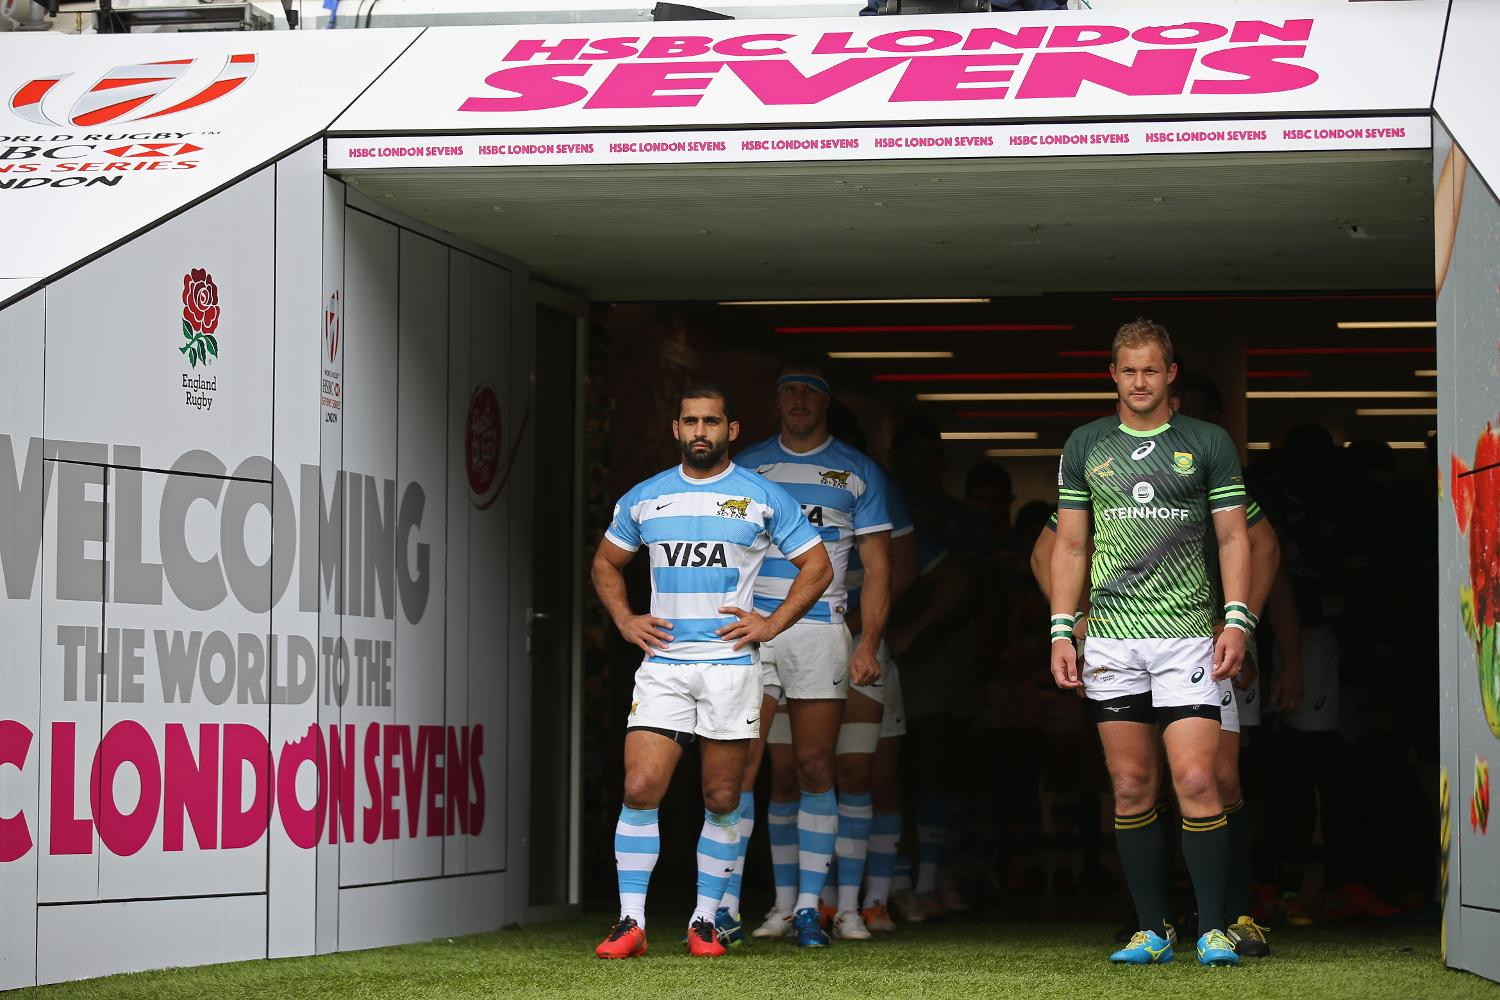 Argentina and South Africa at the HSBC London Sevens